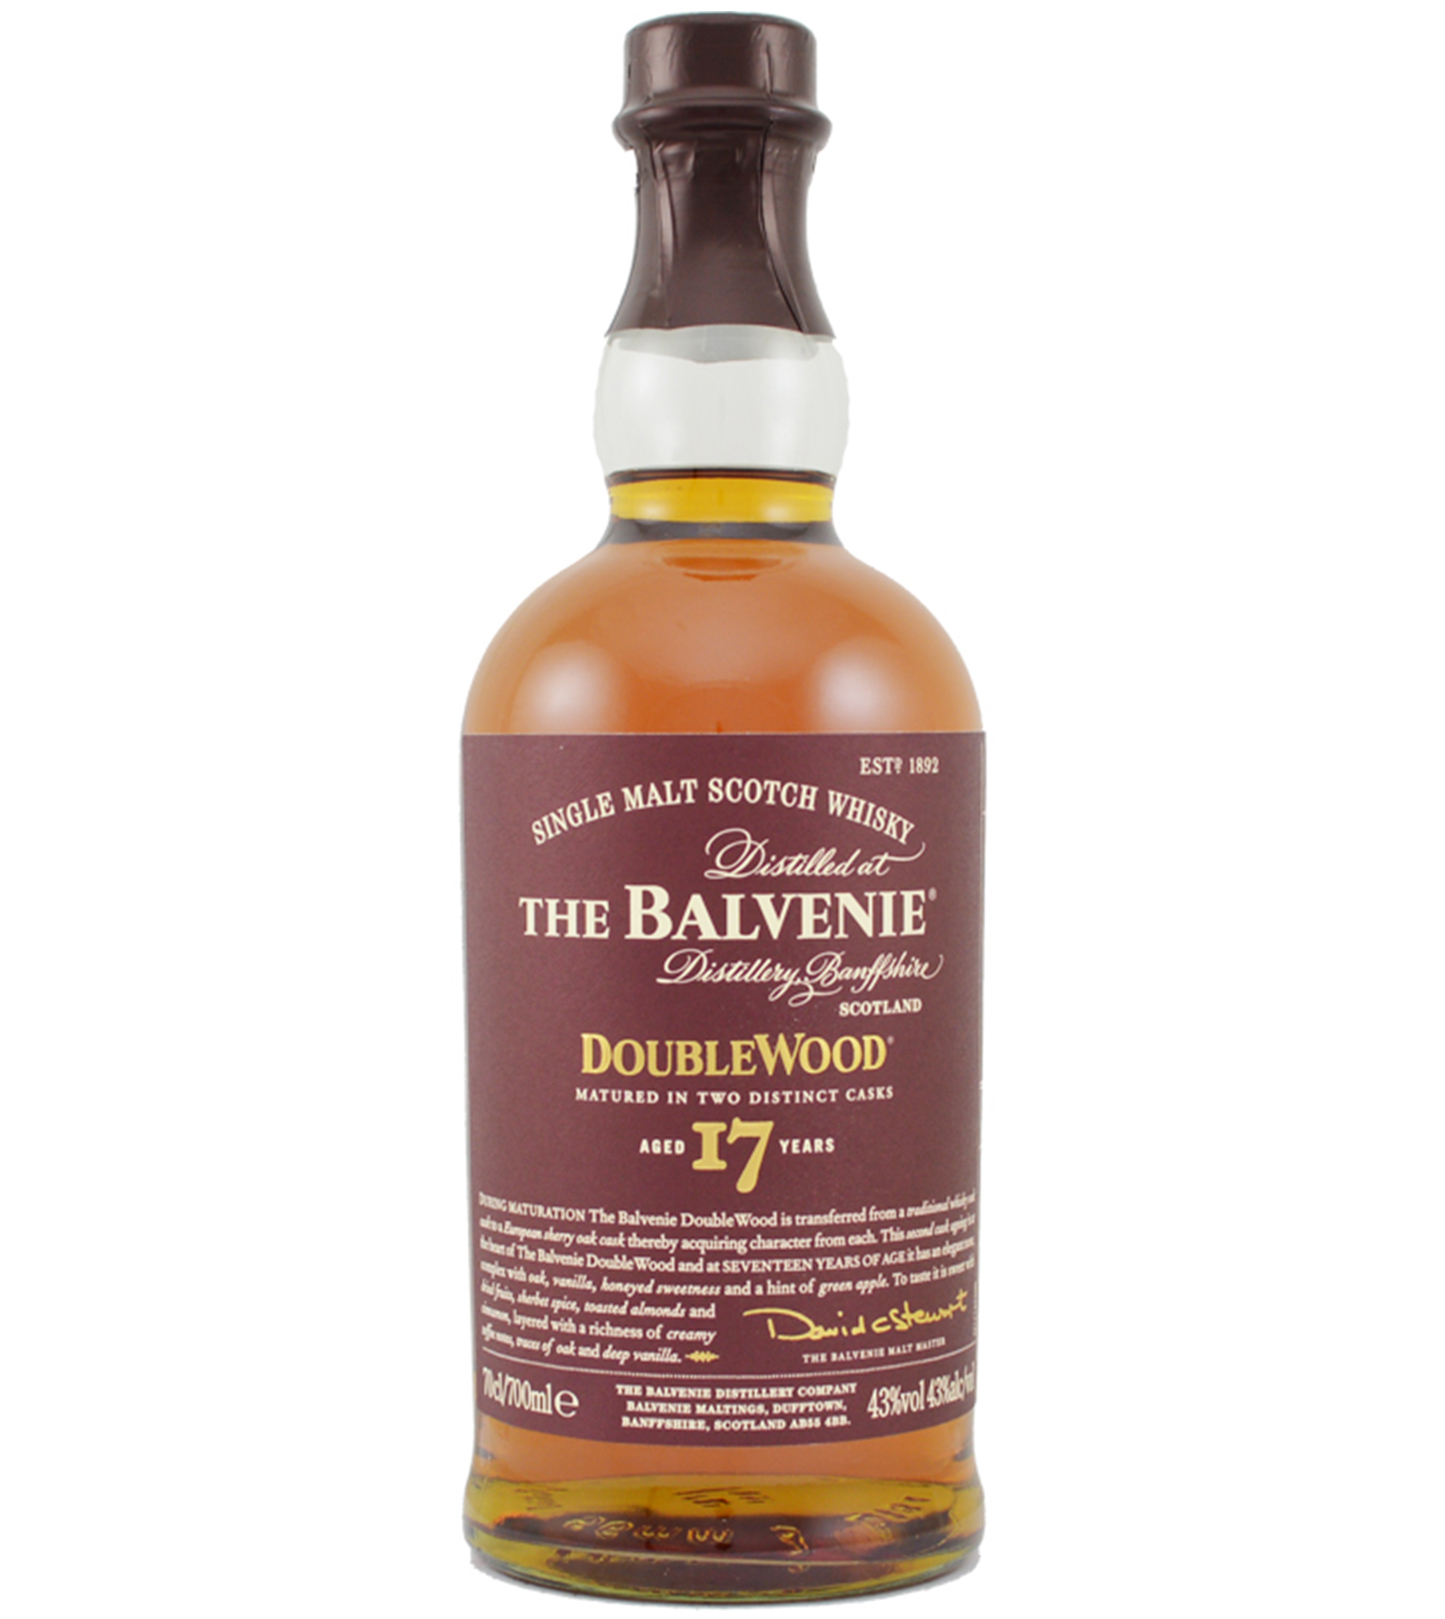 Balvenie 17 years Double Wood